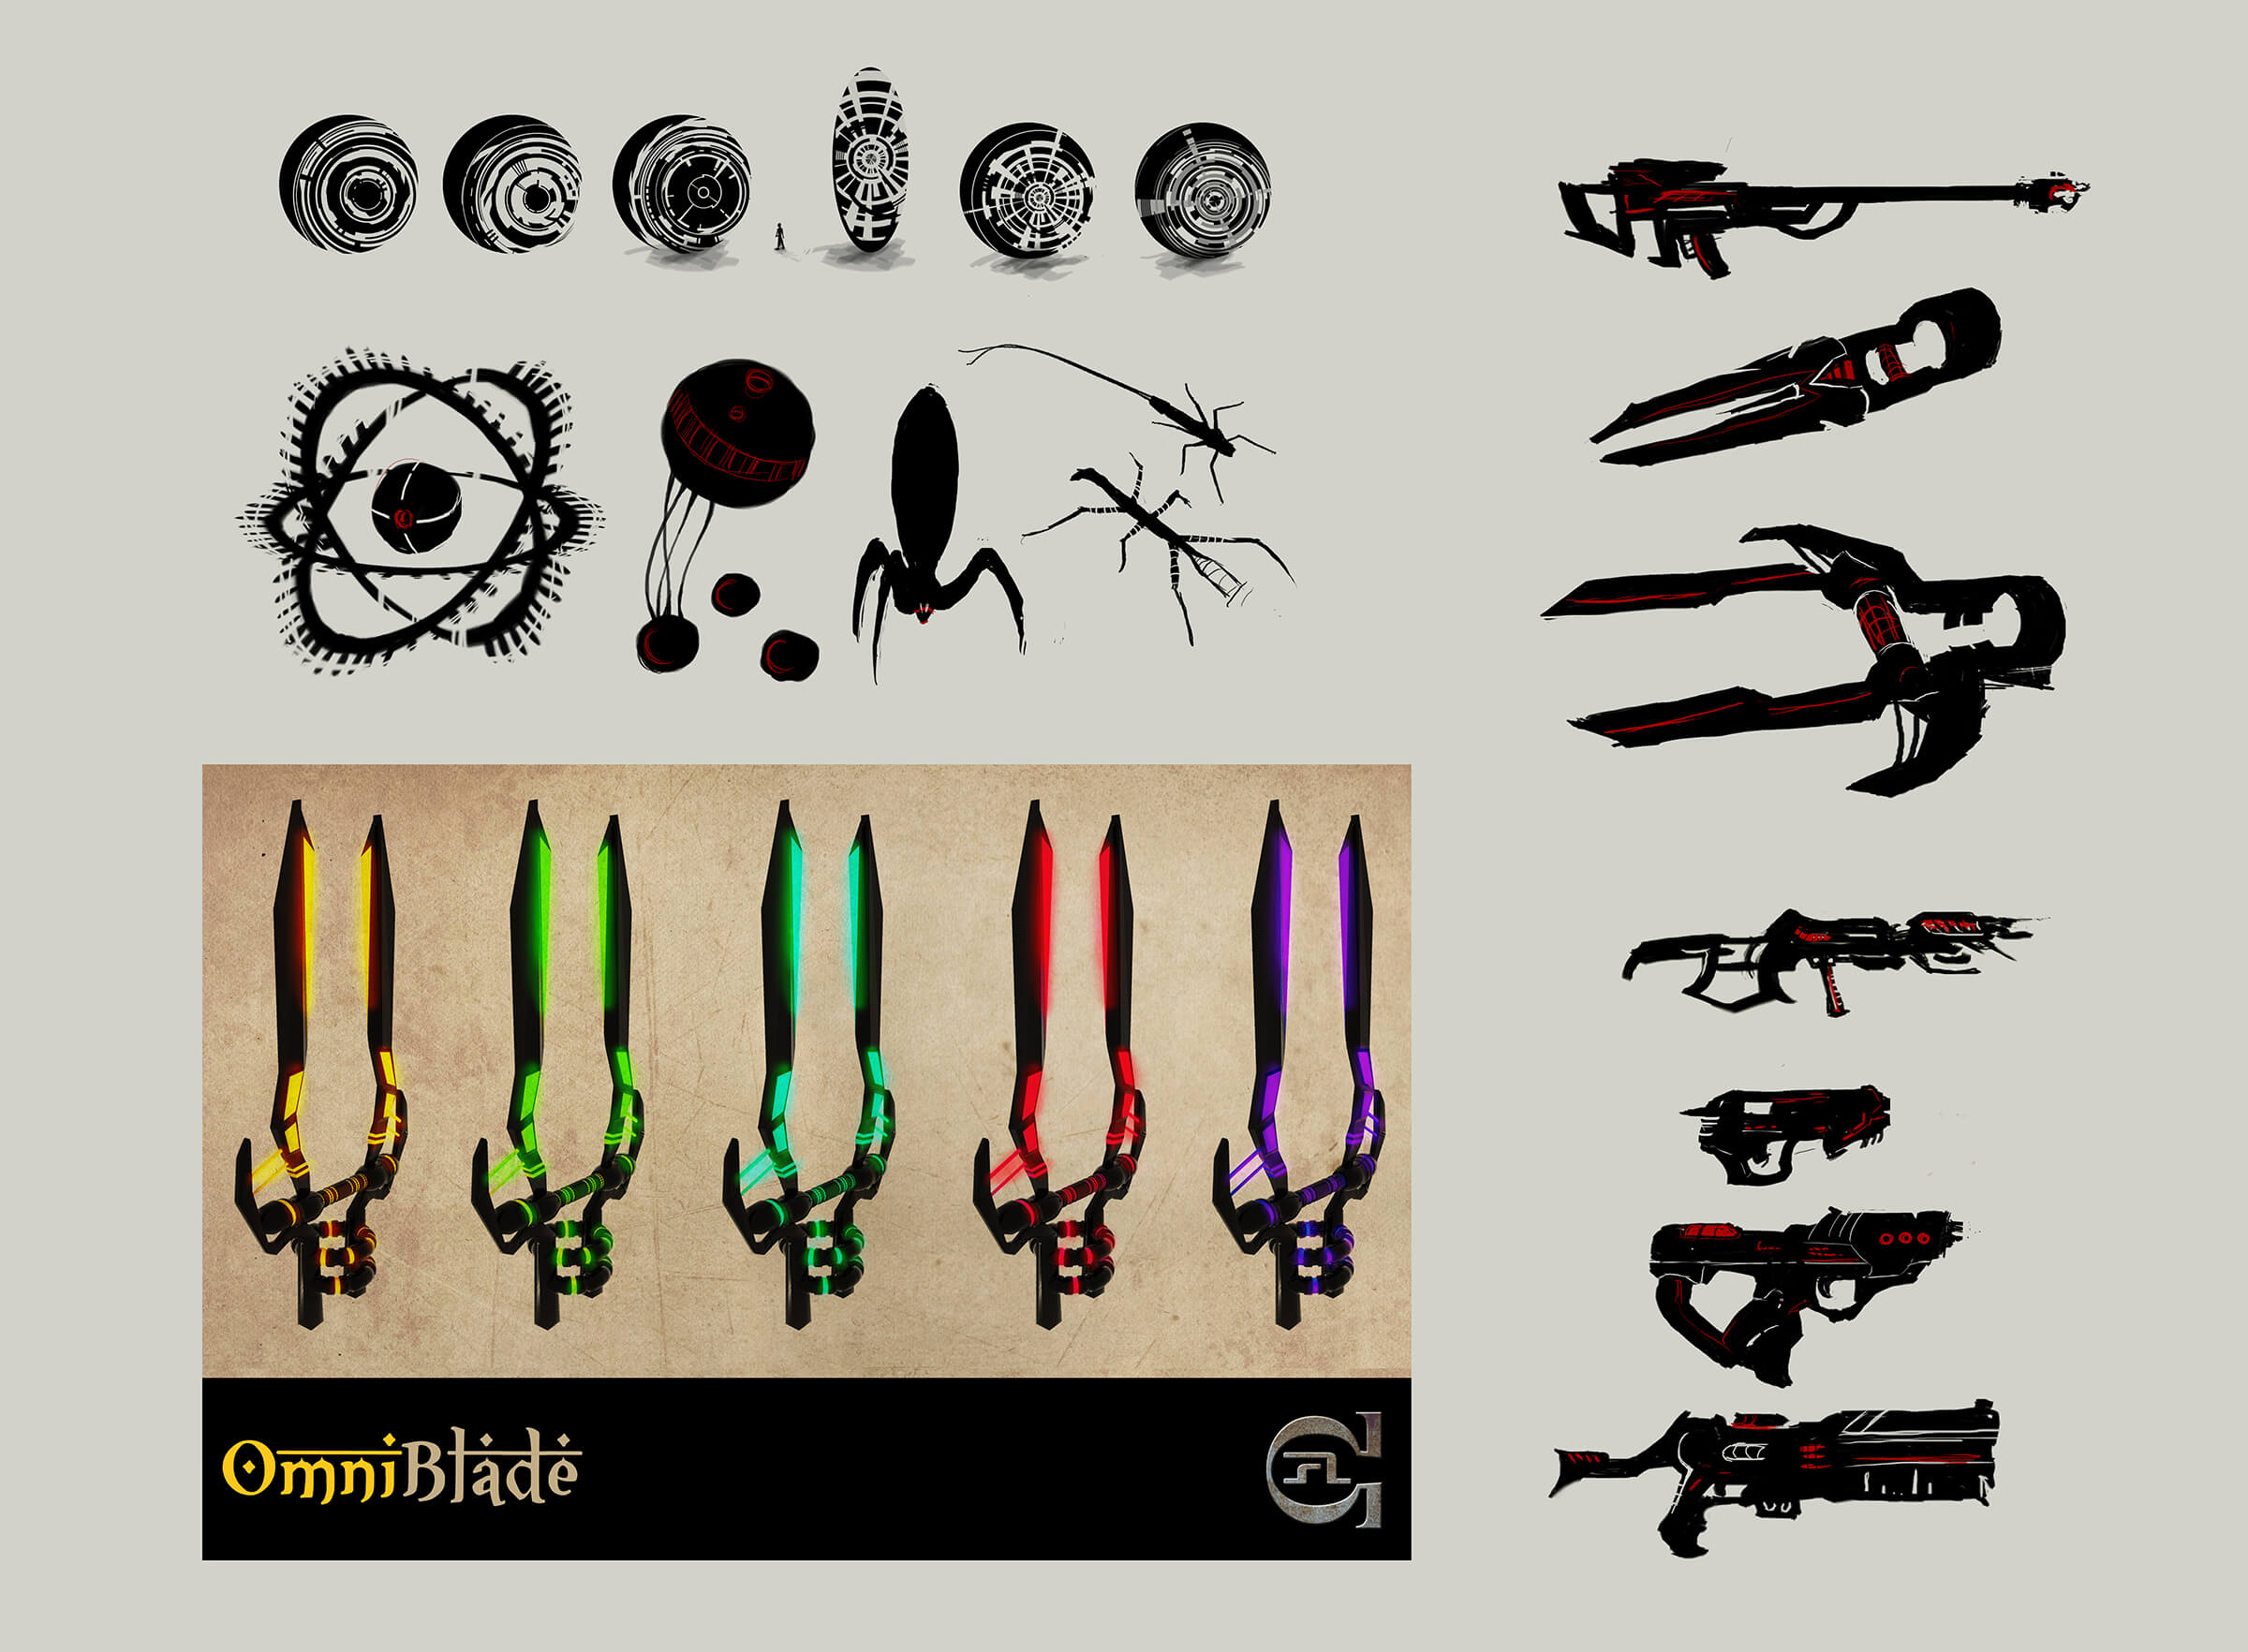 "Sketches of various futuristic tools and implements including pistols, rifles, and ""OmniBlades"" of various colors."